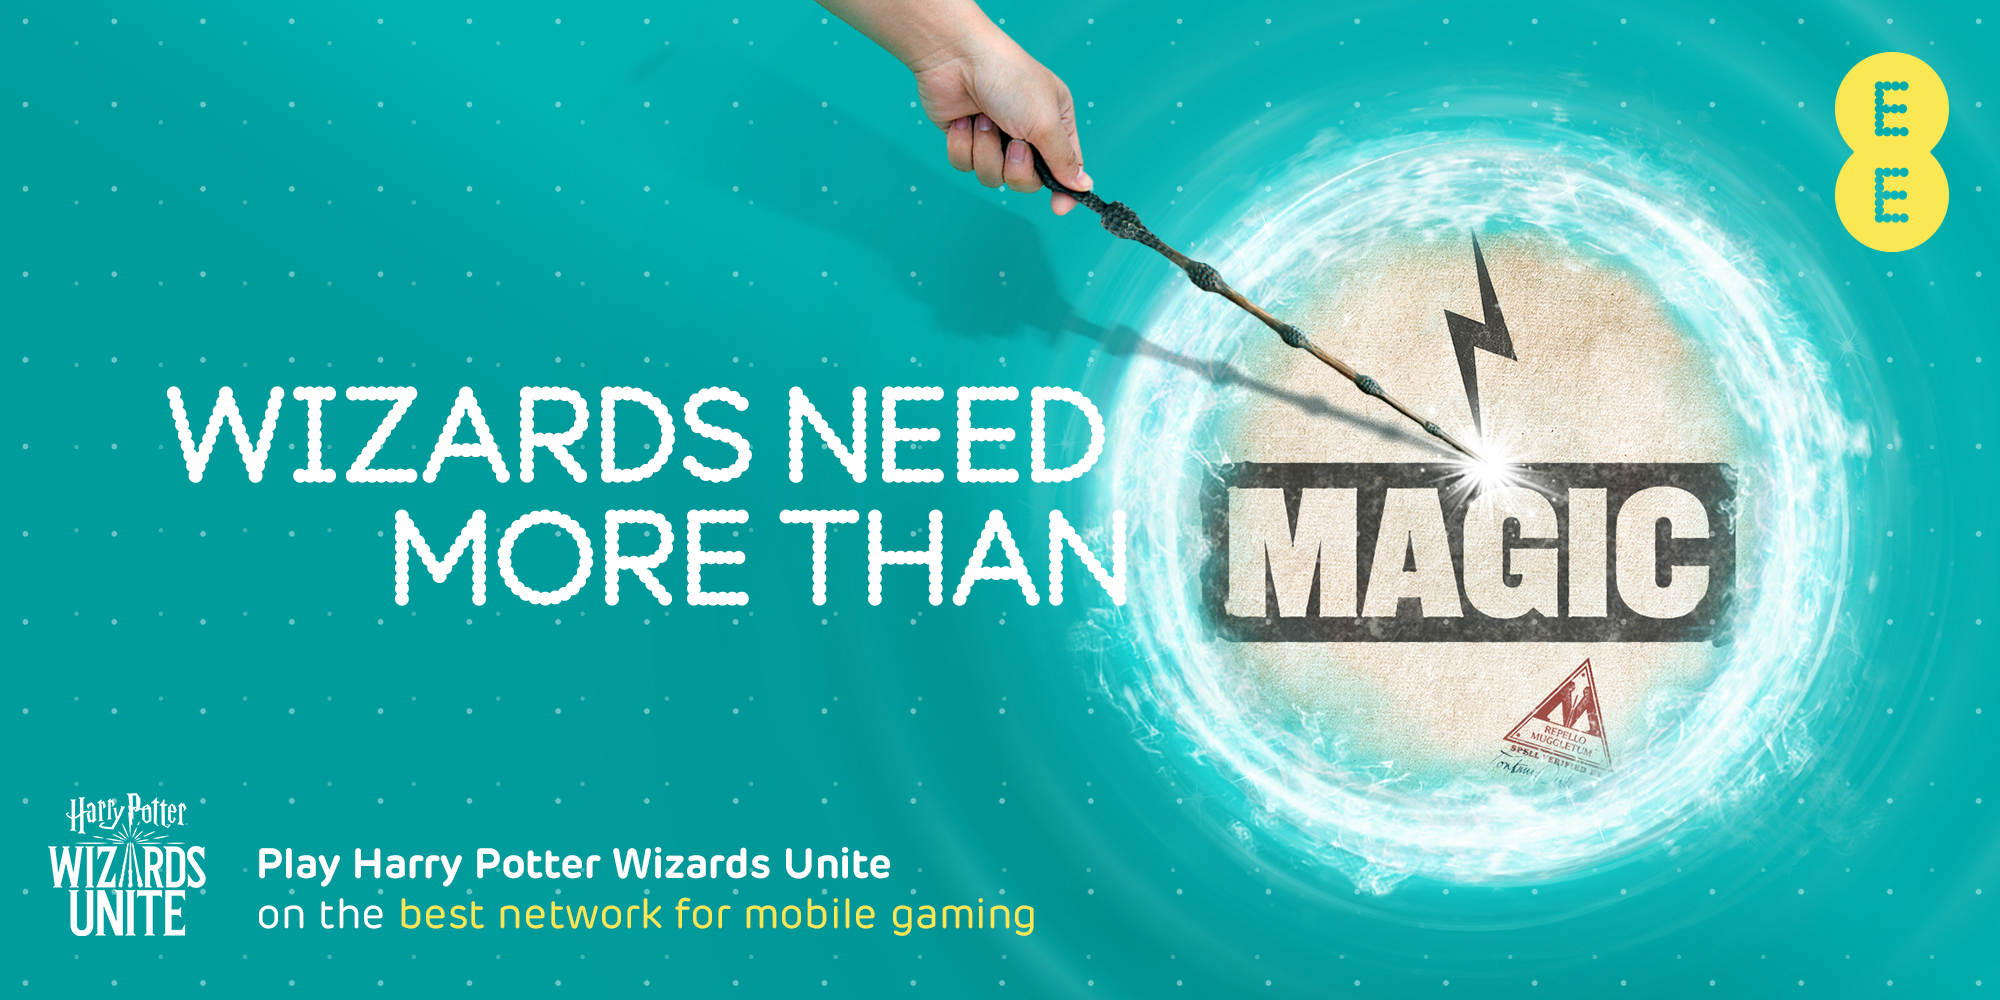 EE partnered with Harry Potter Wizards Unite mobile AR game.